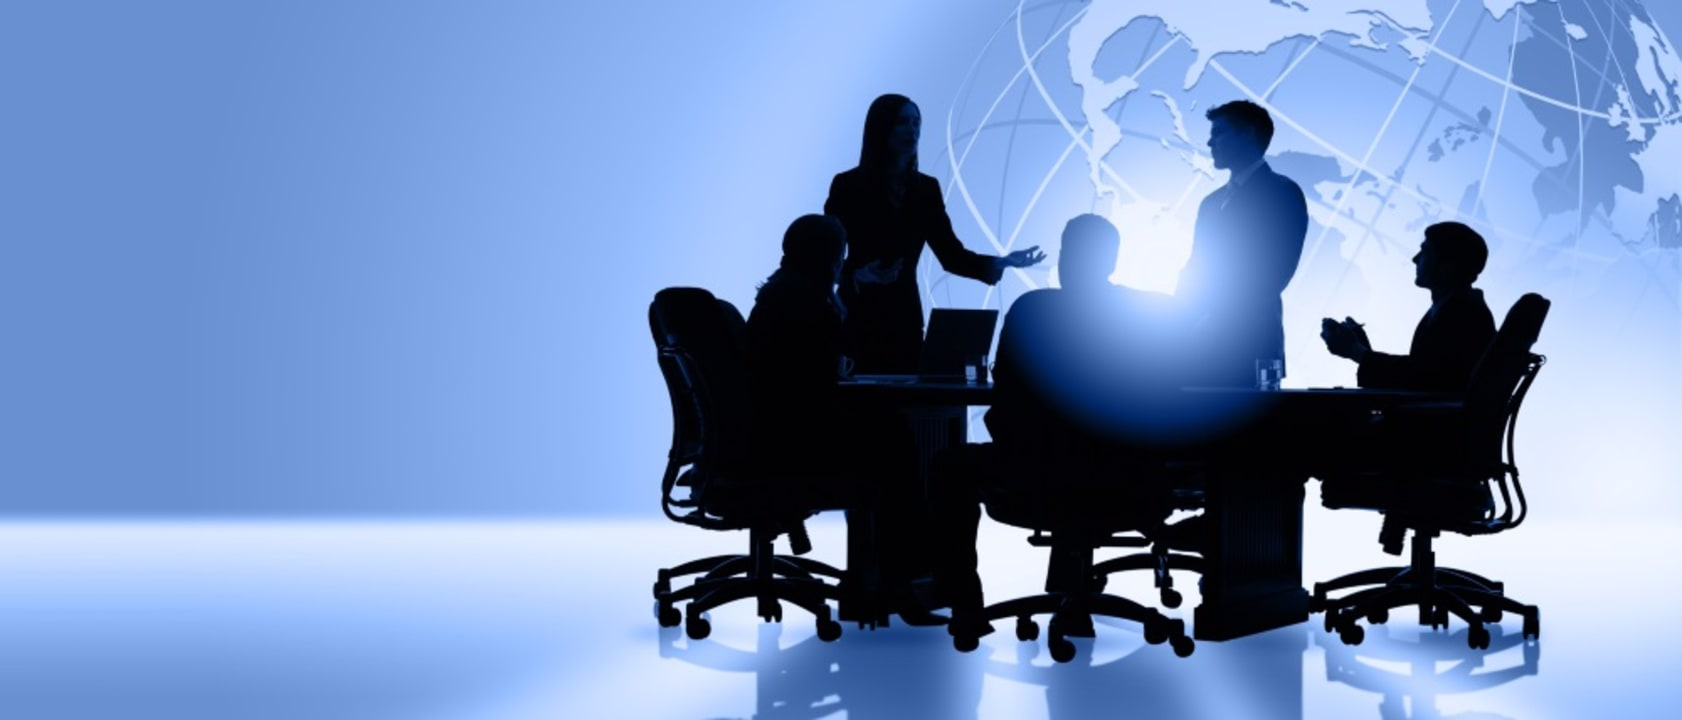 Introduction to effective workplace relationships